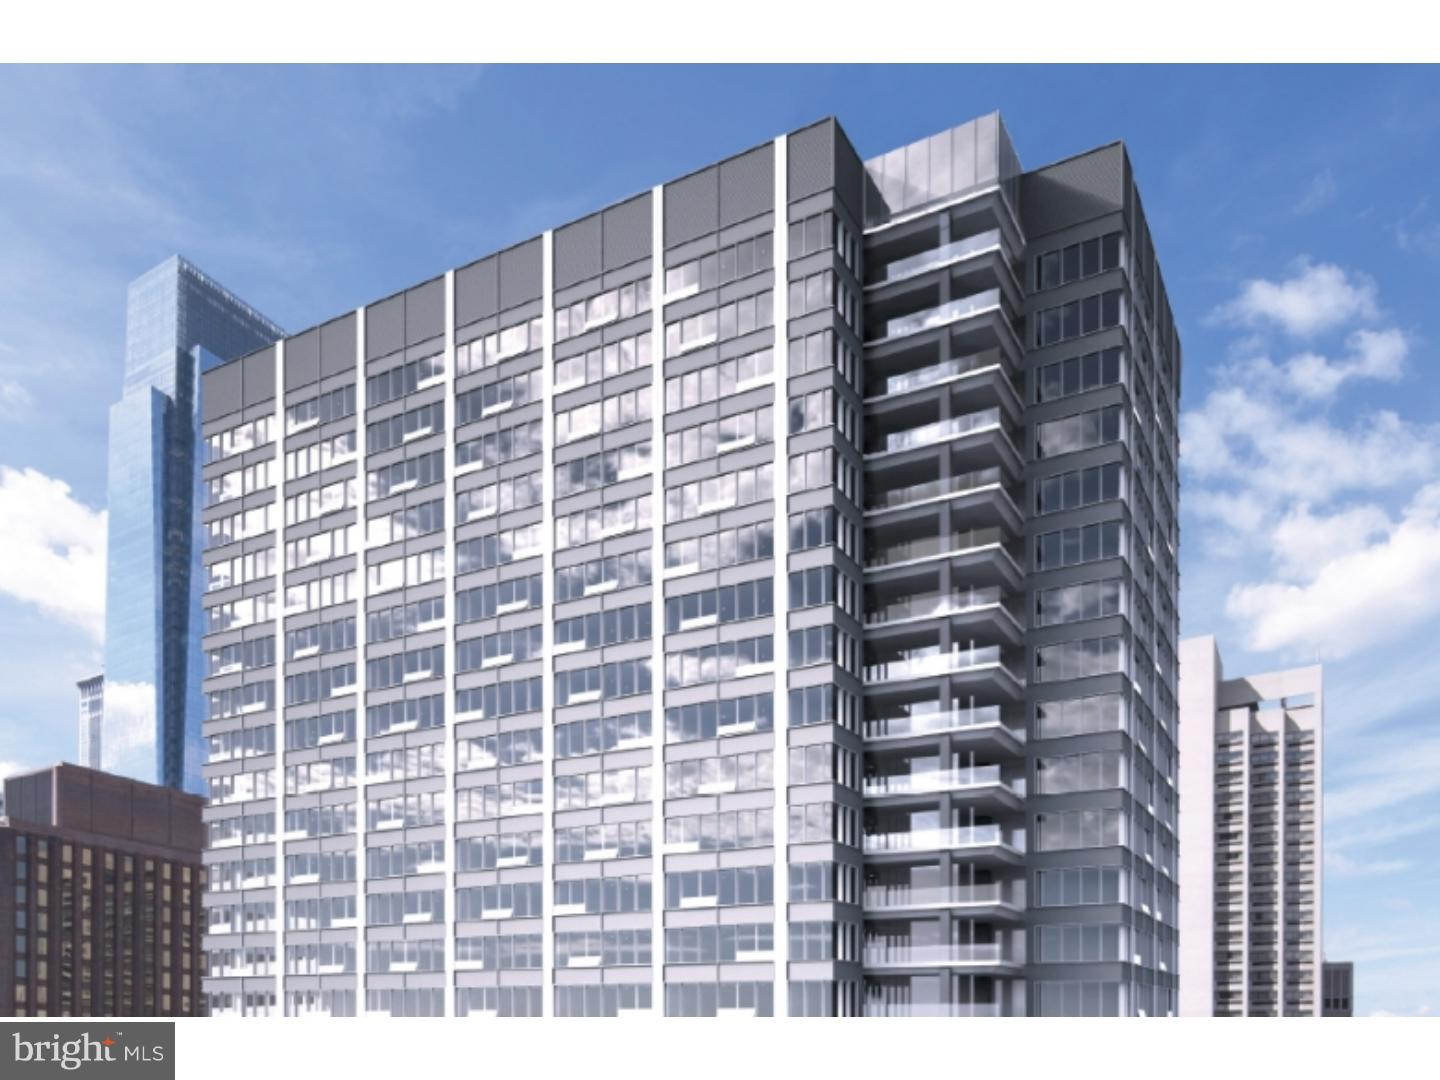 The BEN FRANKLIN BRIDGE & CITY HALL make Residence 711 a MUST SEE! This brand new apartment at FRANKLIN TOWER is off the charts, with a fantastic 2 bedroom layout. All HARDWOOD floors throughout, open kitchen with custom cabinets, all GRANITE COUNTER TOPS, stainless appliances, and breakfast bar. Bedrooms are SPACIOUS and GRACIOUS with huge closets. All marble, and tile baths with European white sandstone sinks. This new APARTMENT building community boasts, GARAGE PARKING, and one of the following on EVERY FLOOR: gyms, community rooms, business centers, screening rooms, and SPIN ROOMS. The ROOF DECK is the LARGEST in PHILADELPHIA, and has 360 degree AMAZING VIEWS!!!!!!!!! CENTER CITY'S NEWEST LUXURY GLASS TOWER RESIDENCE is a MUST SEE TO BELIEVE  LIFE STYLE property, and just minutes from fantastic dining, entertainment, Hahnemann hospital, I95, I676, Kelly Drive, The Barnes, and Whole foods Market. Incentives: Limited time 1 month free on a 13 month lease, waived app fee, and waived $350 amenity fee. Parking available for additional fee. Photo's are of model unit.